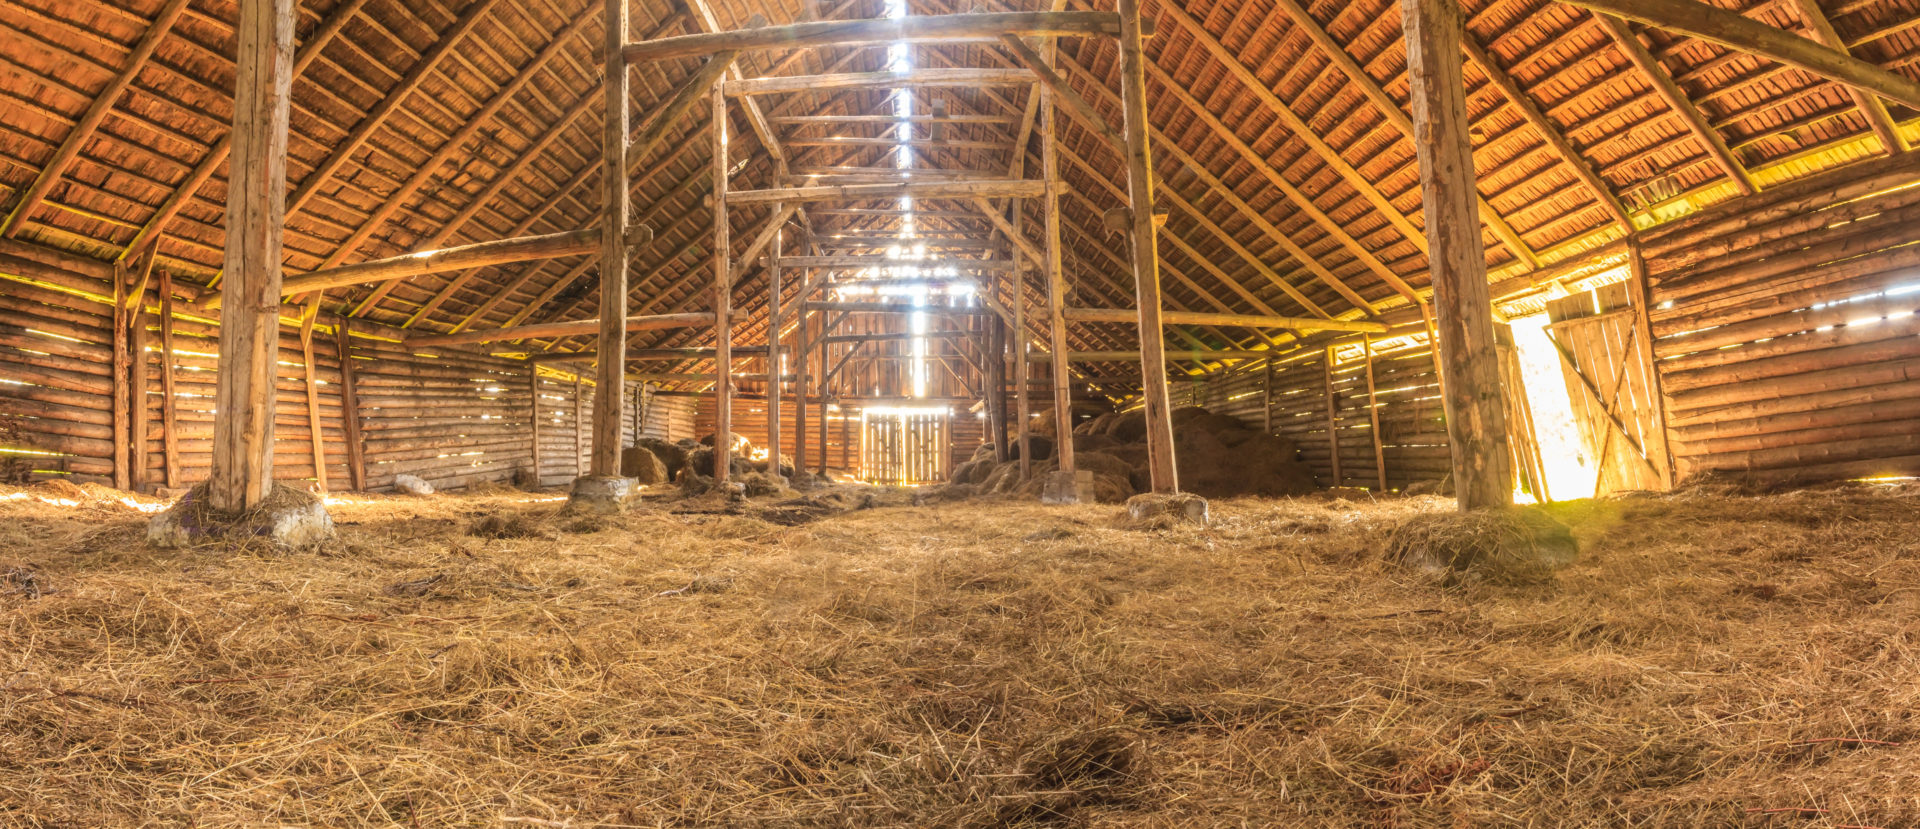 Empty hay loft in old barn